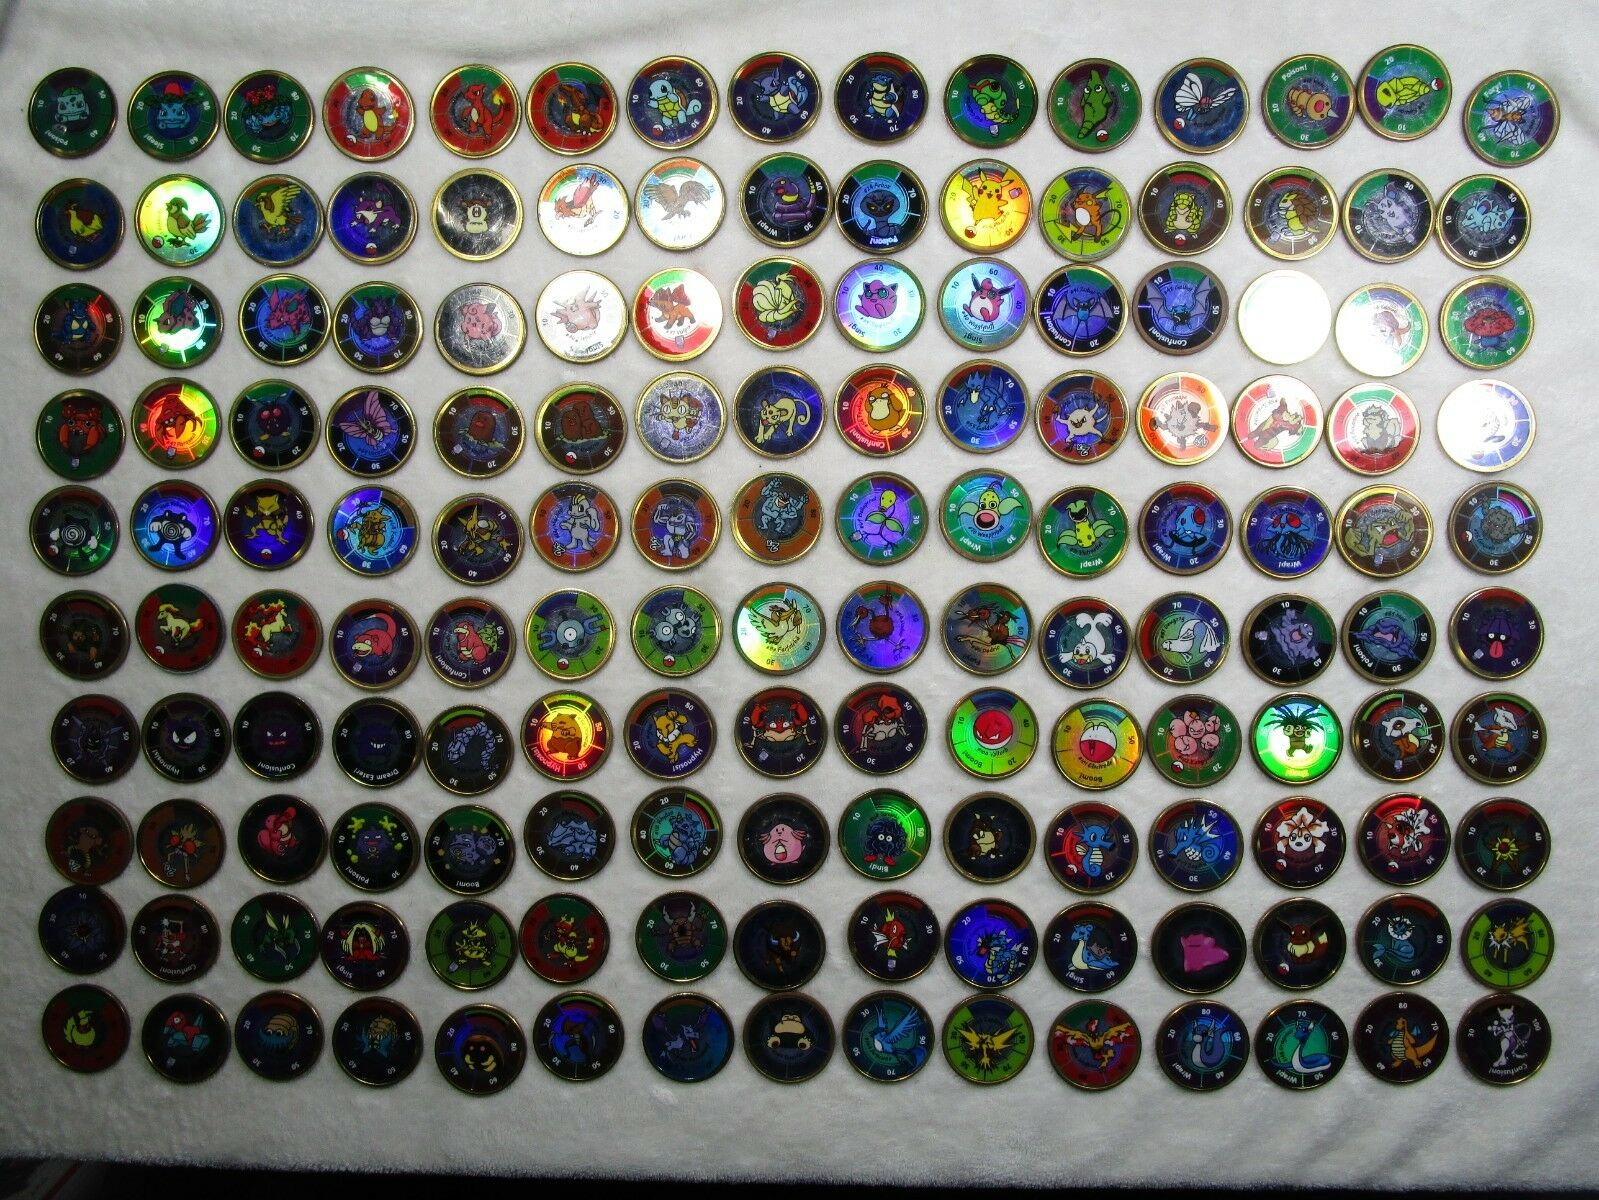 COMPLETE Pokedex Lot of 150 Pokemon Battling coins. With Charizard and more